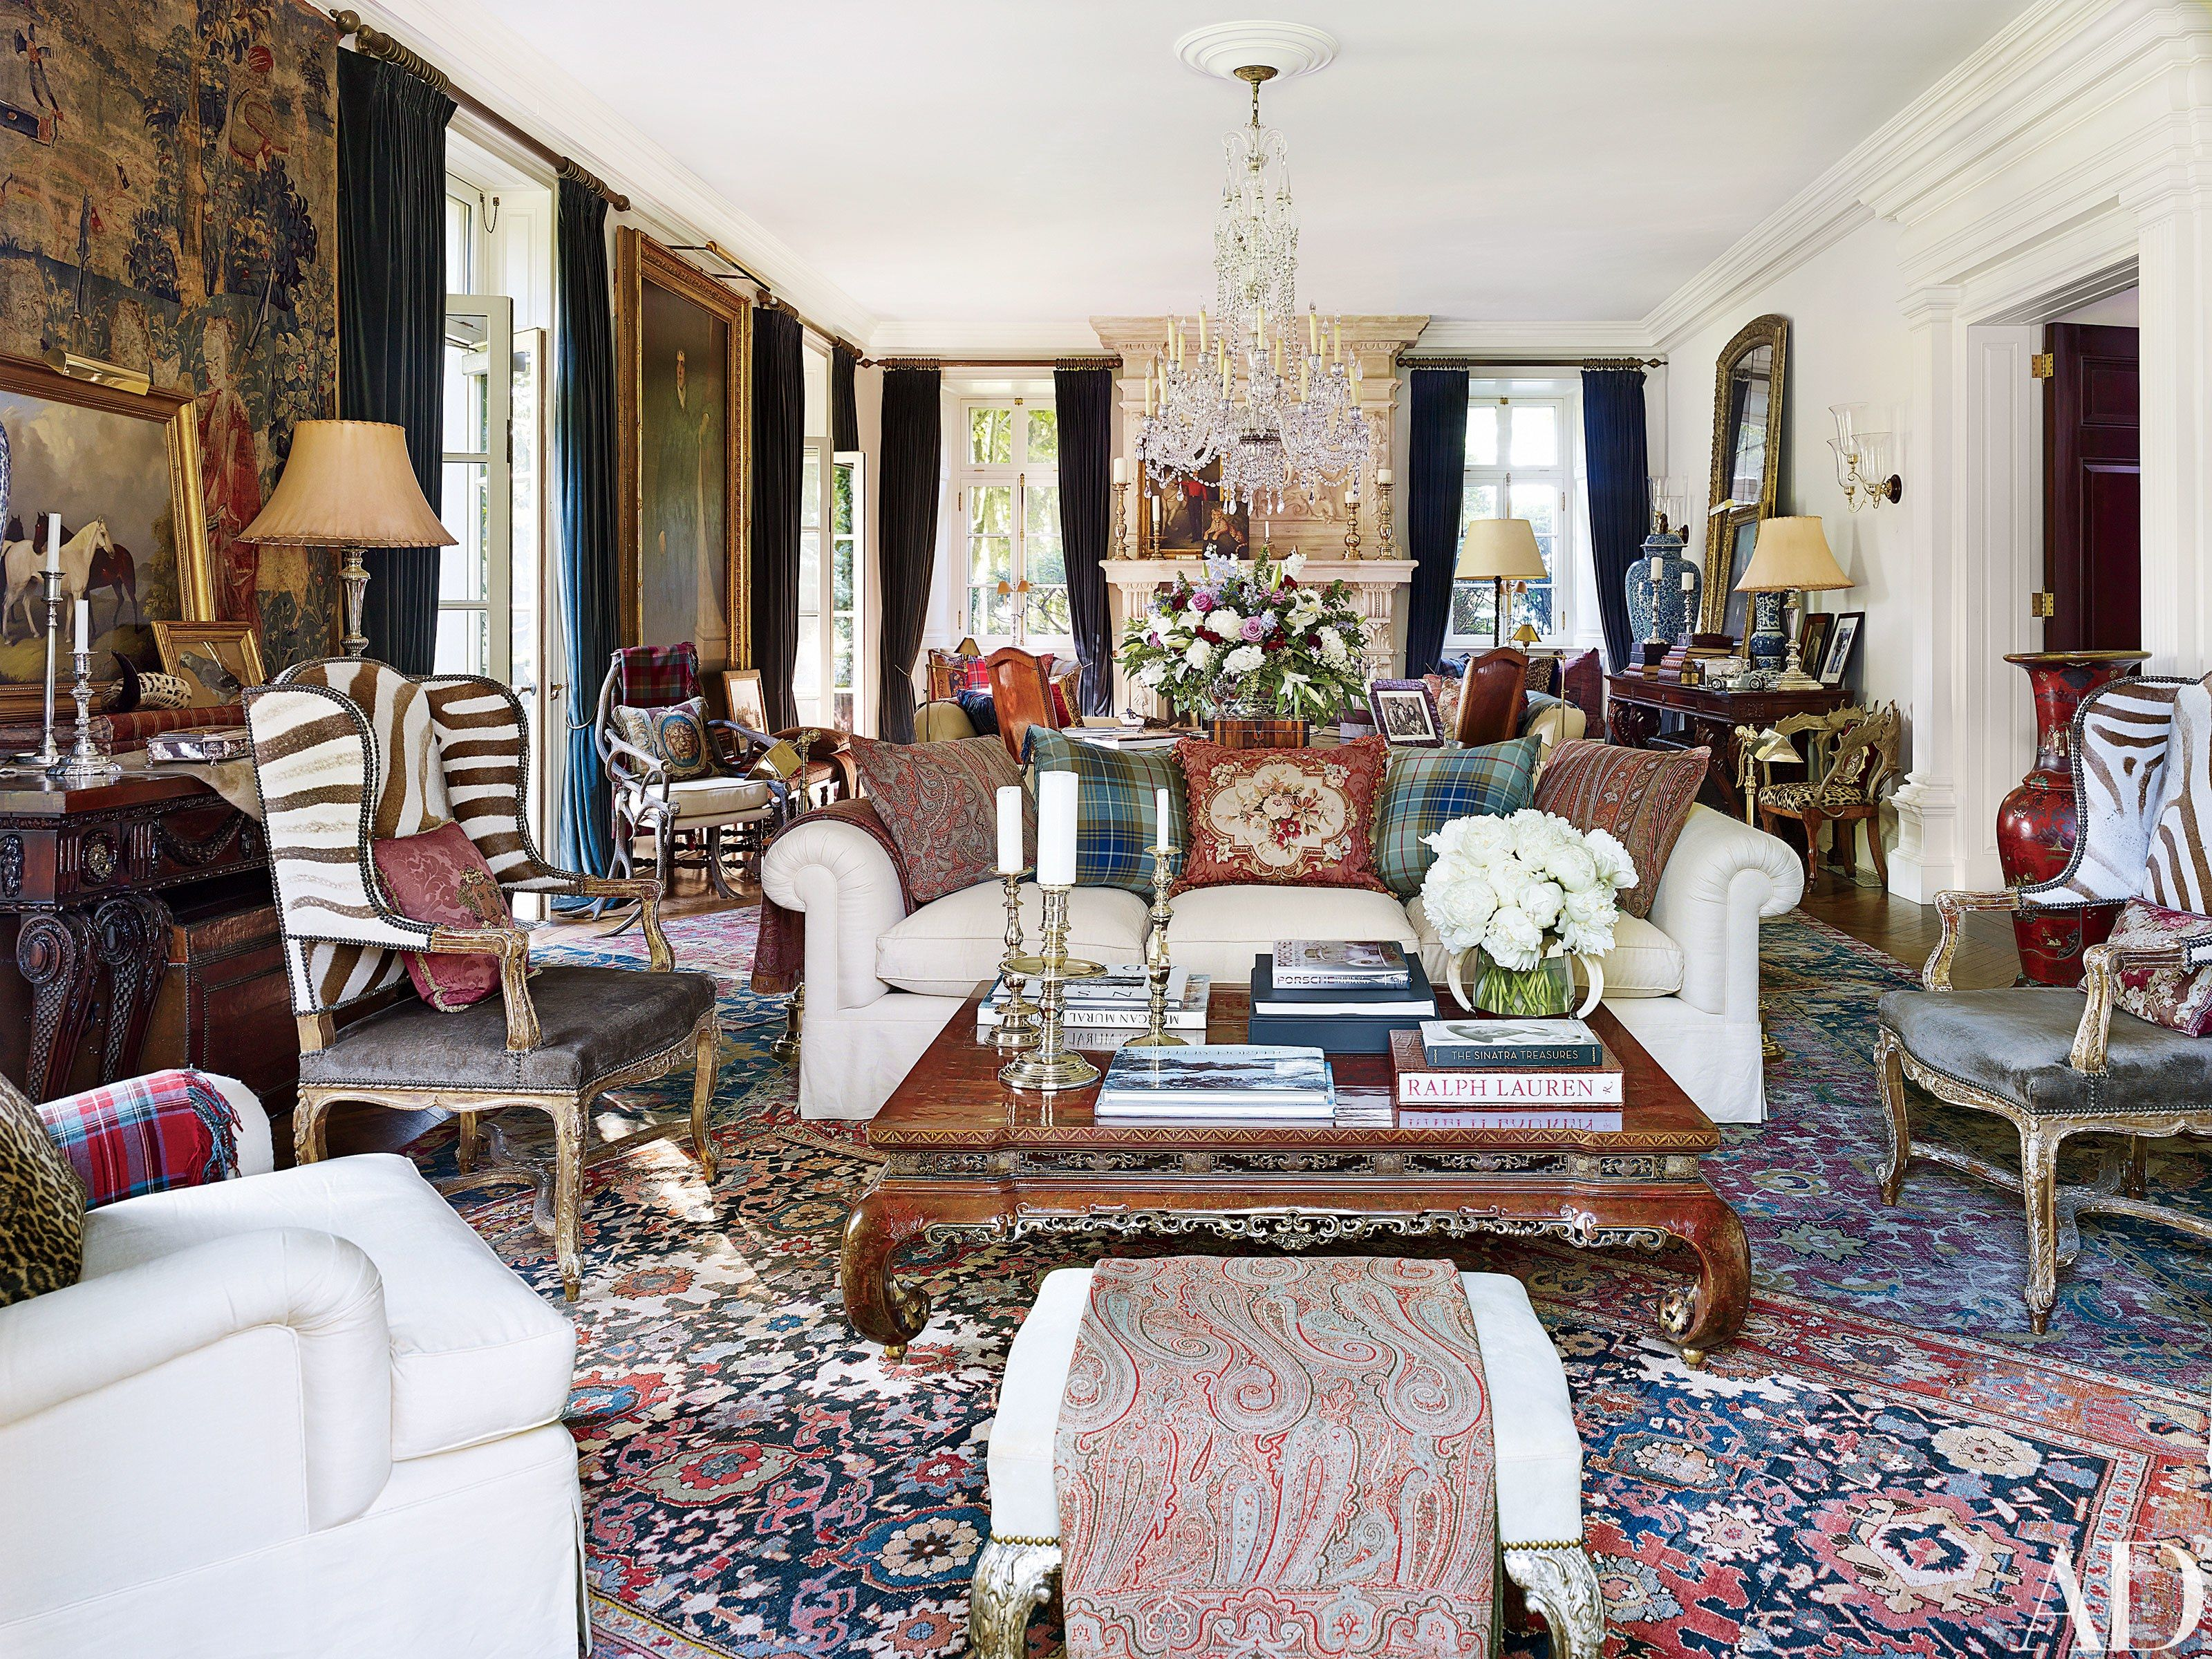 ralph lauren home office accents. Ralph Lauren\u0027s Refined Homes And Chic Madison Avenue Office Photos | Architectural Digest Lauren Home Accents E